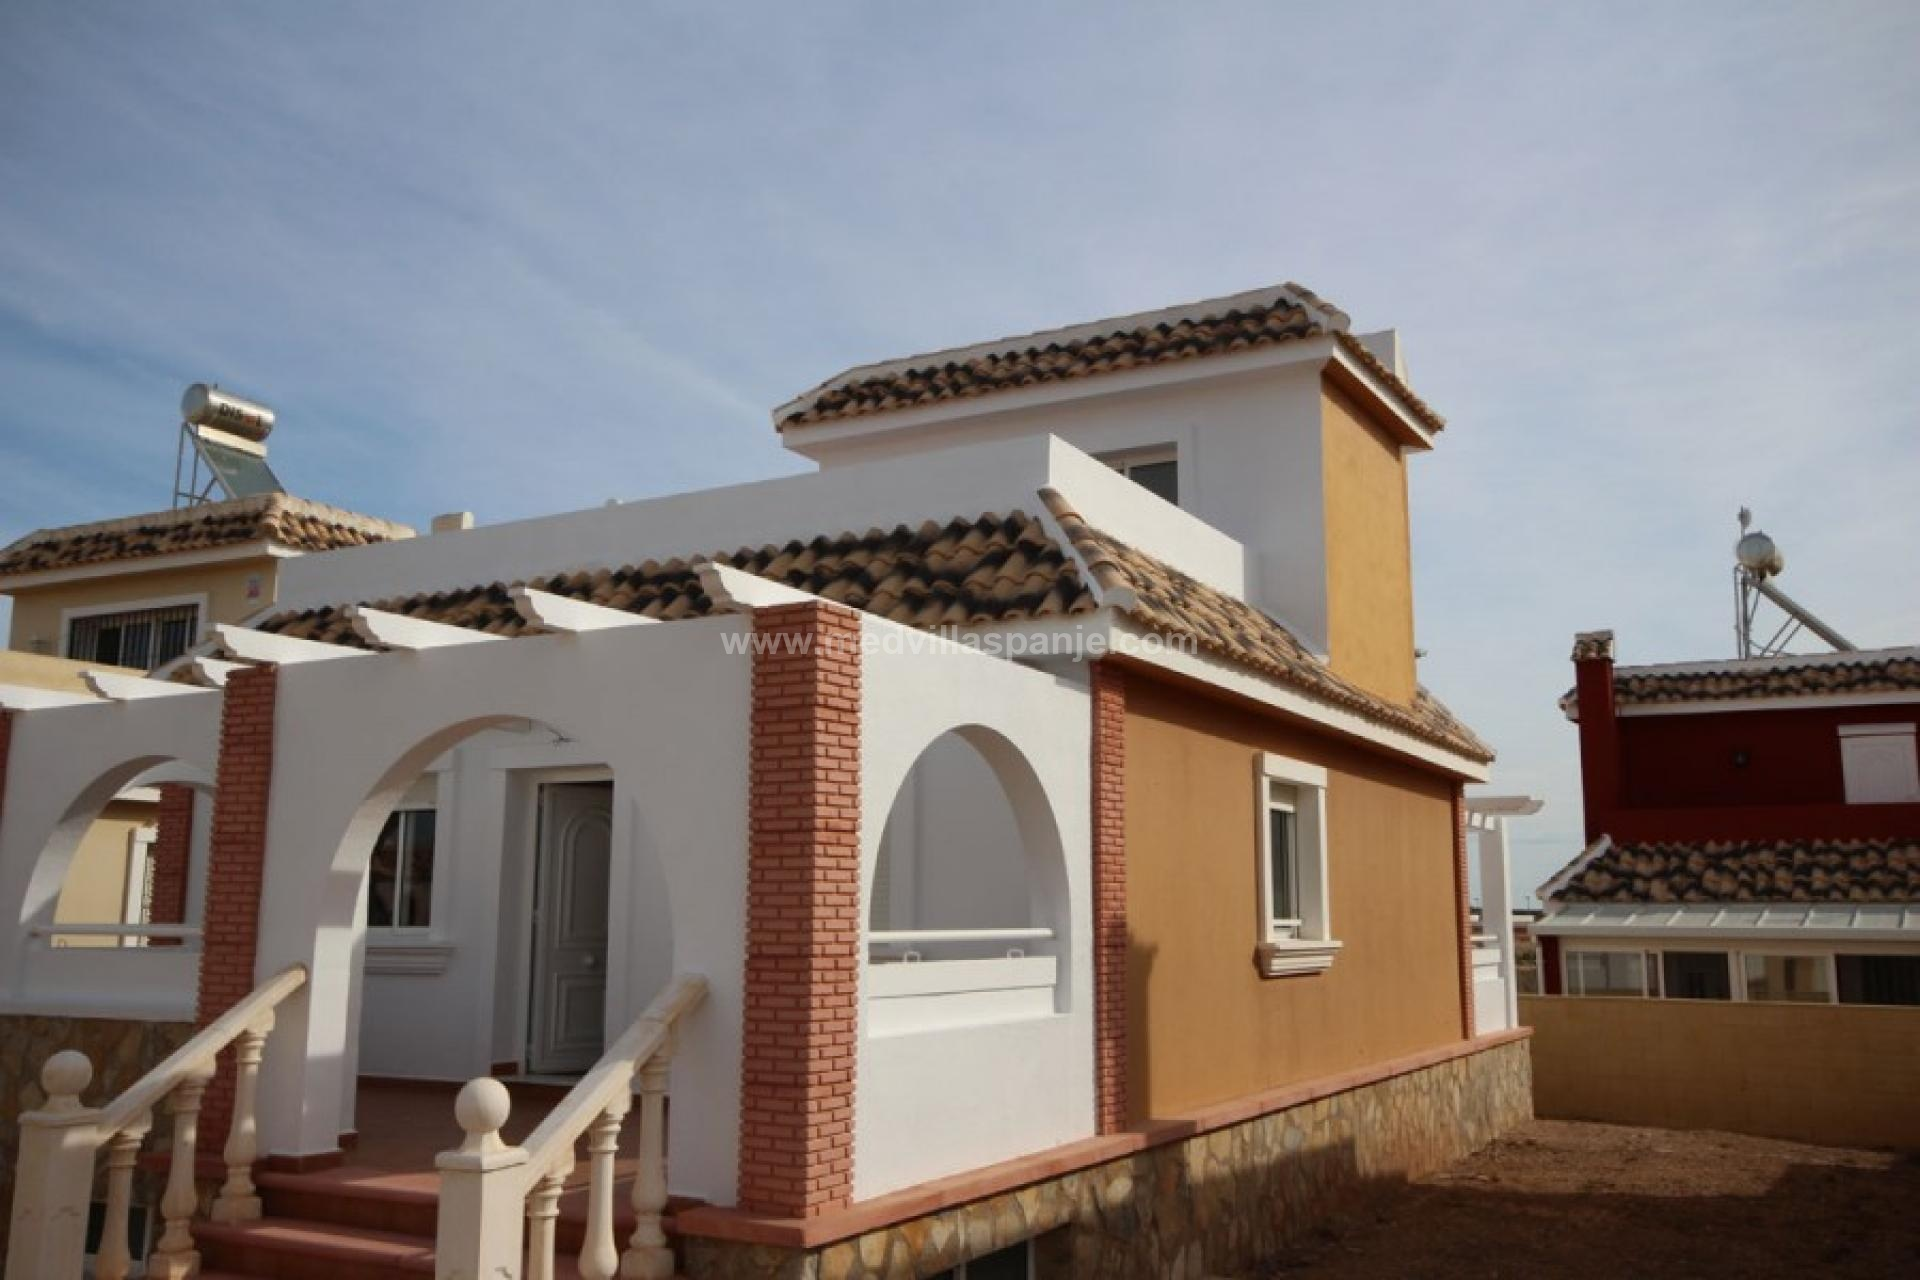 2 bedroom Villa in Balsicas - New build in Medvilla Spanje